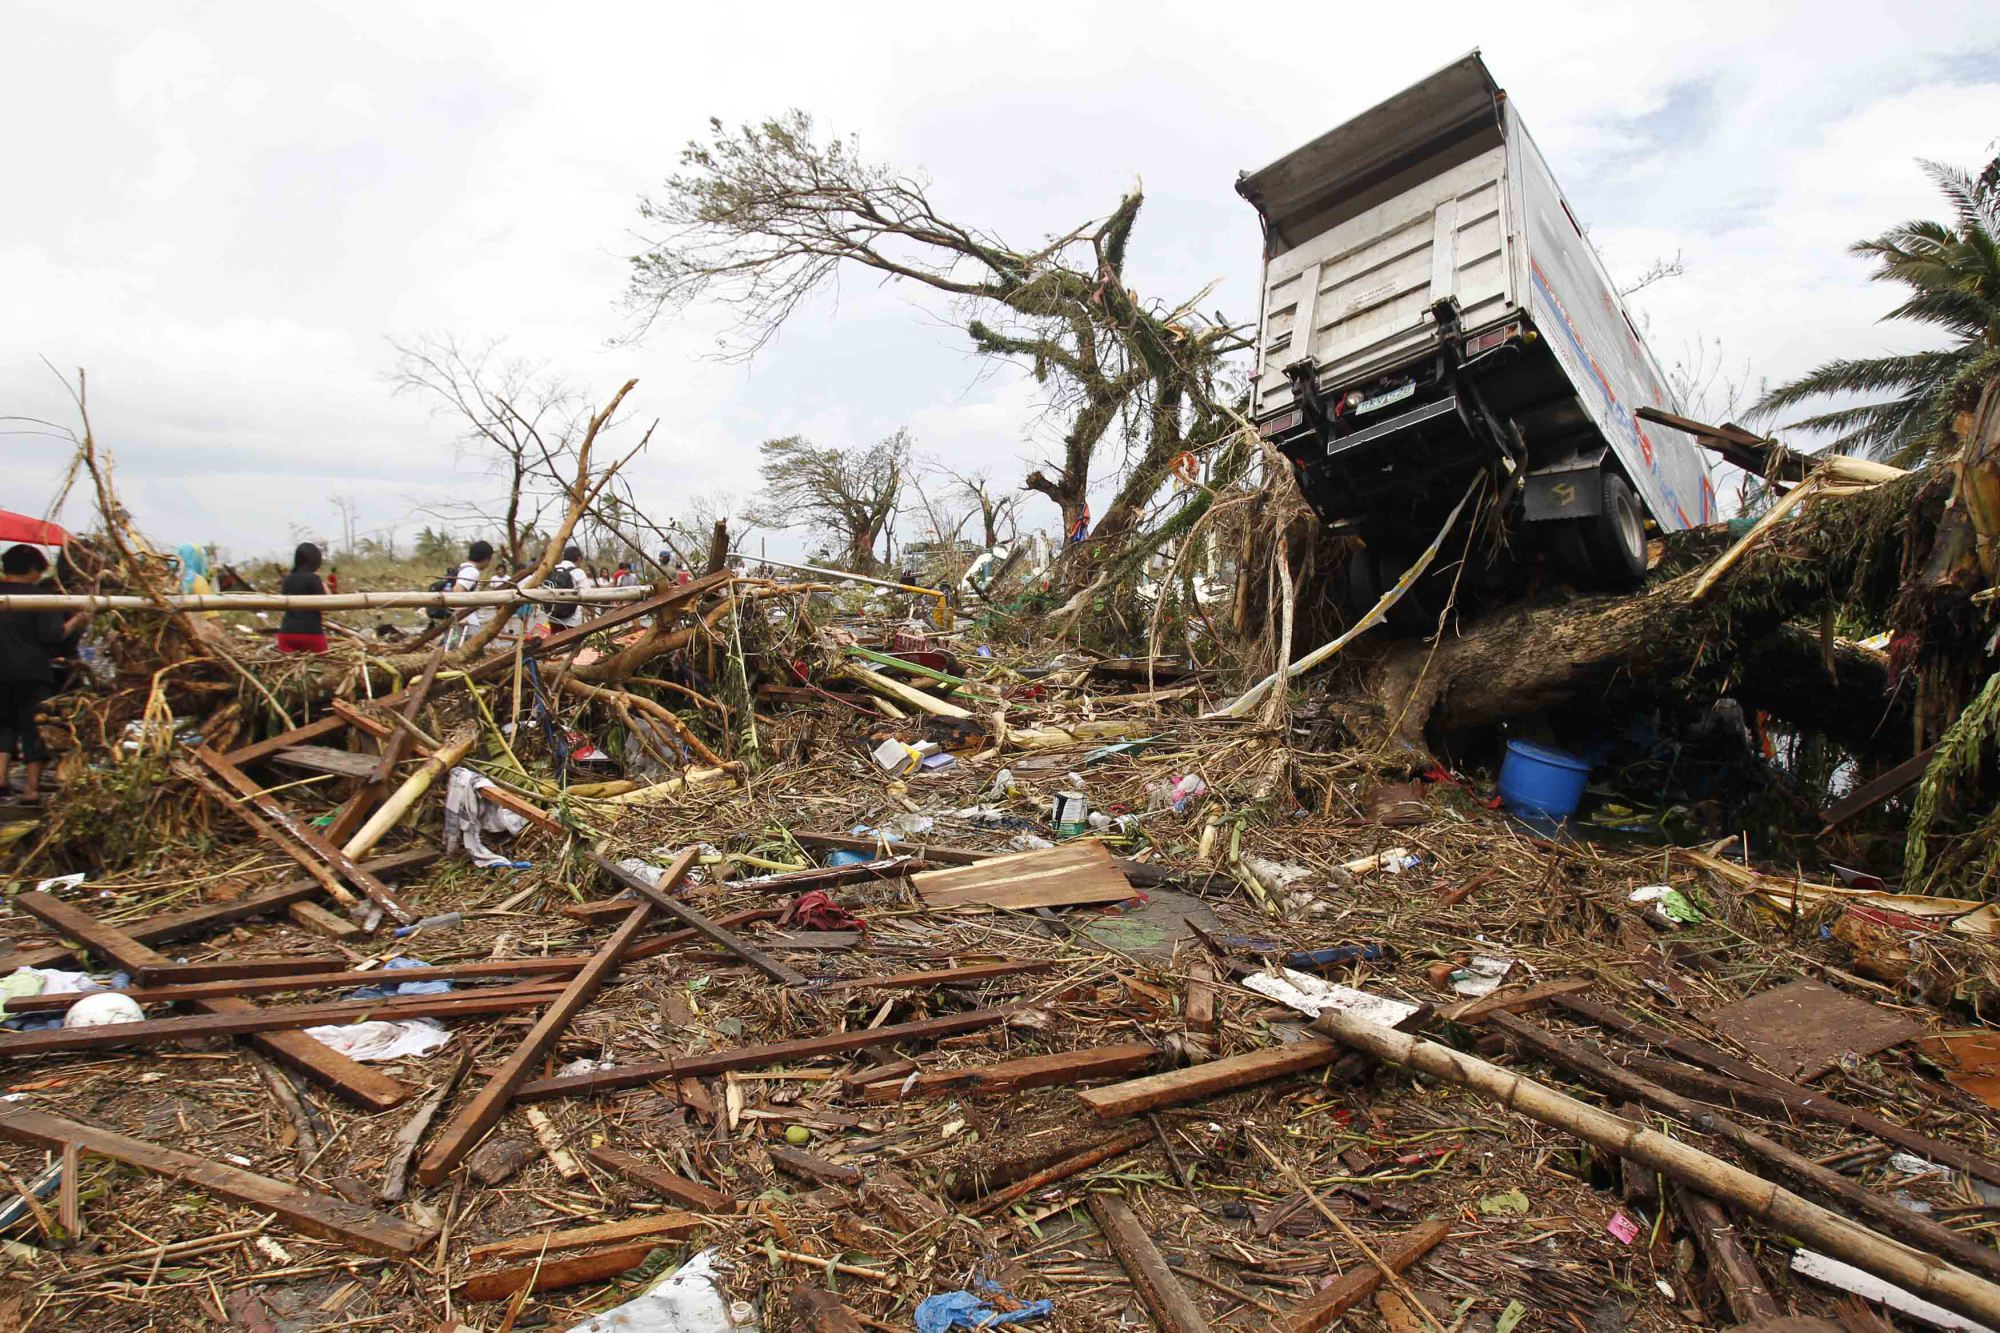 A truck is seen on a tree in the aftermath of Supertyphoon Haiyan in Tacloban, the Philippines, on Nov. 9, 2013